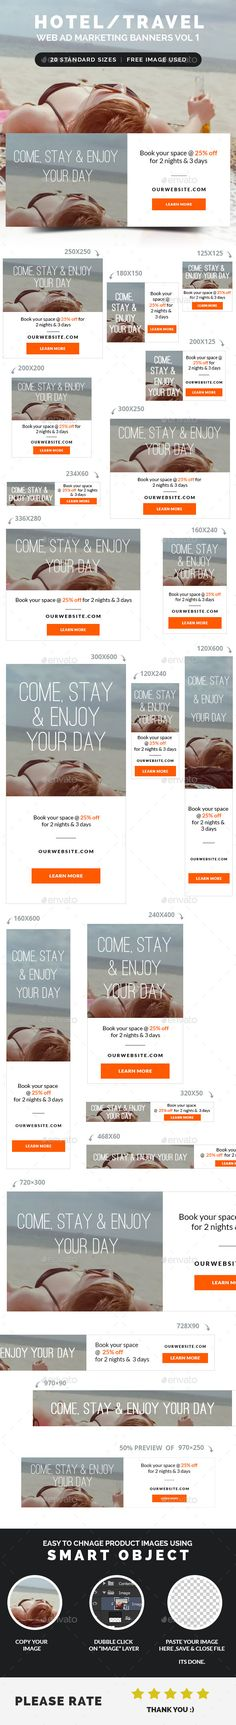 Hotel / Travel Web Ad Marketing Banners Template PSD   Buy and Download: http://graphicriver.net/item/hotel-travel-web-ad-marketing-banners-vol-1/8952771?WT.ac=category_thumb&WT.z_author=webduck&ref=ksioks